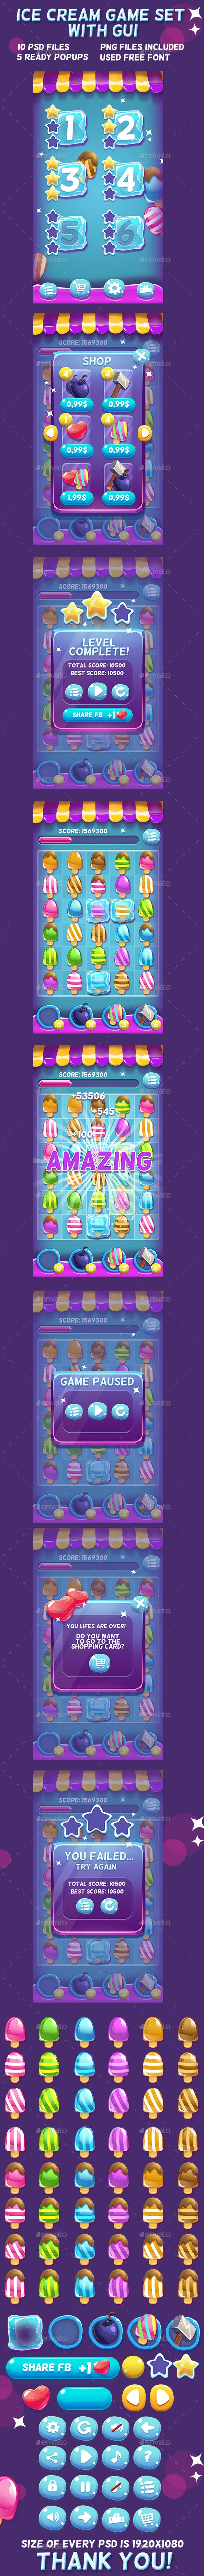 Ice Cream Game Set with UI - Game Kits Game Asset Design Template PSD. Download here: http://graphicriver.net/item/ice-cream-game-set-with-ui/16578021?ref=yinkira